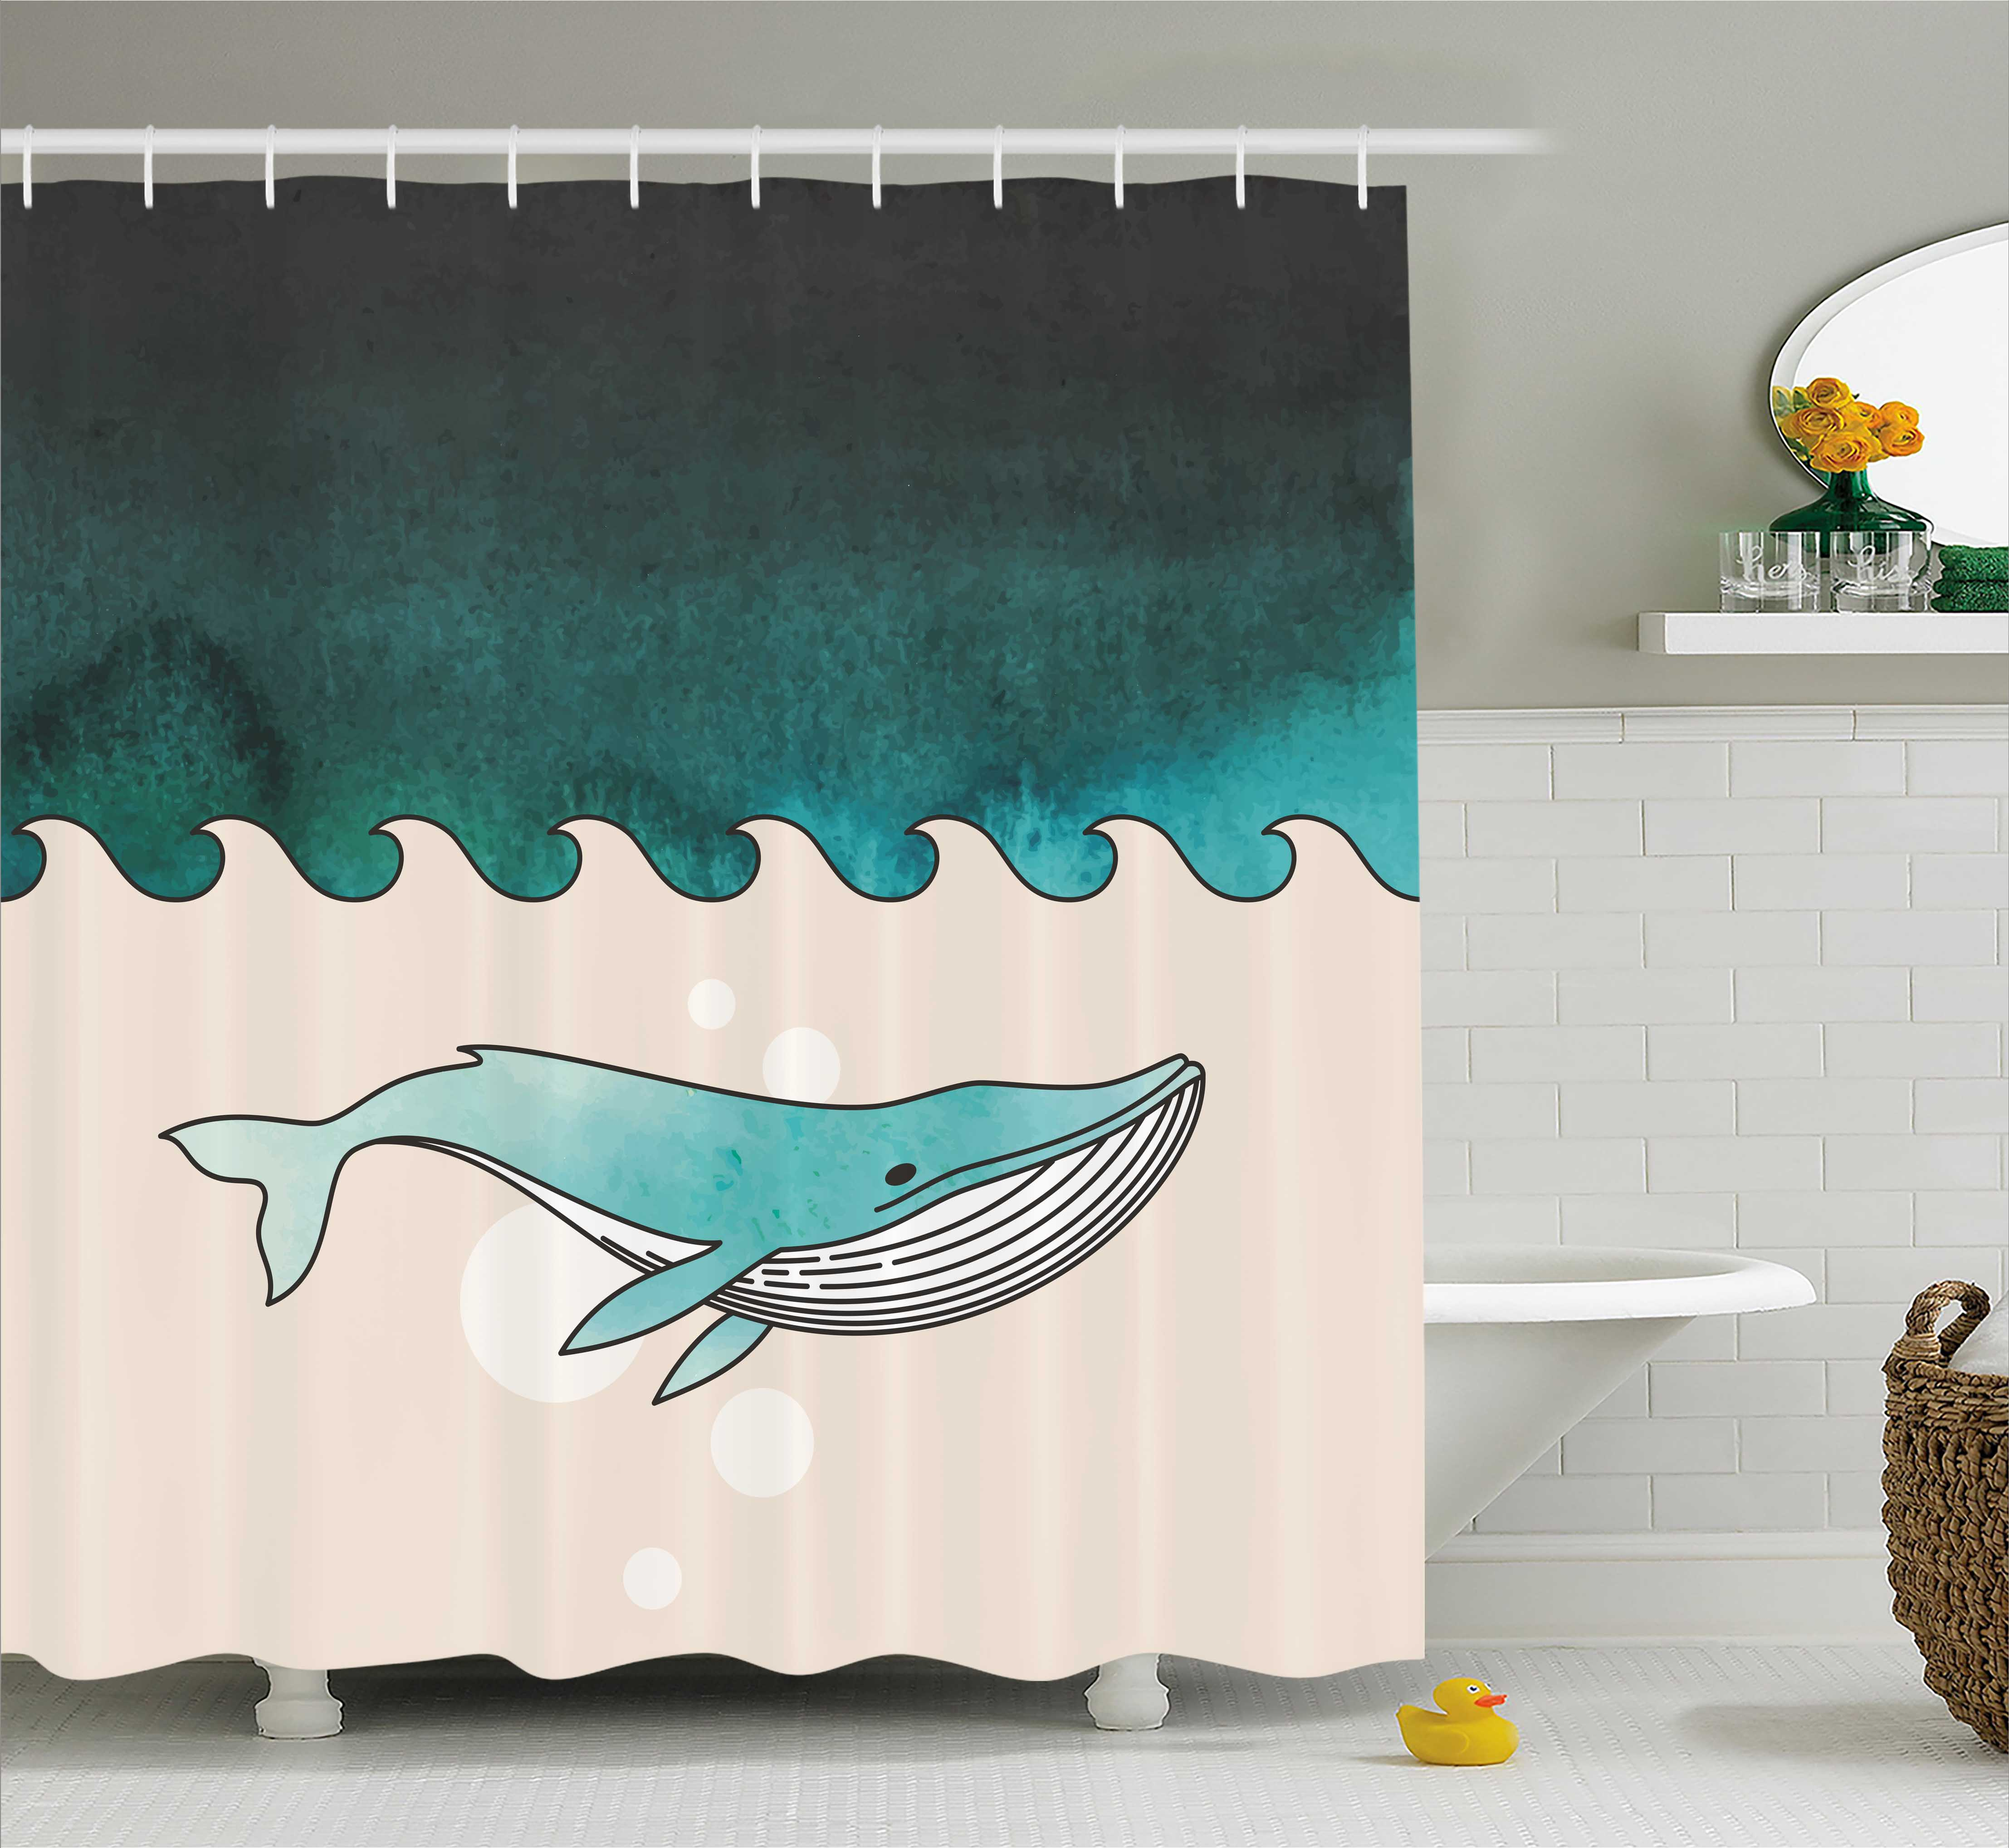 Whale Shower Curtain Fish Swimming In The Ocean Pattern Underwater Submarine Illustration Fabric Bathroom Set With Hooks 69W X 84L Inches Extra Long